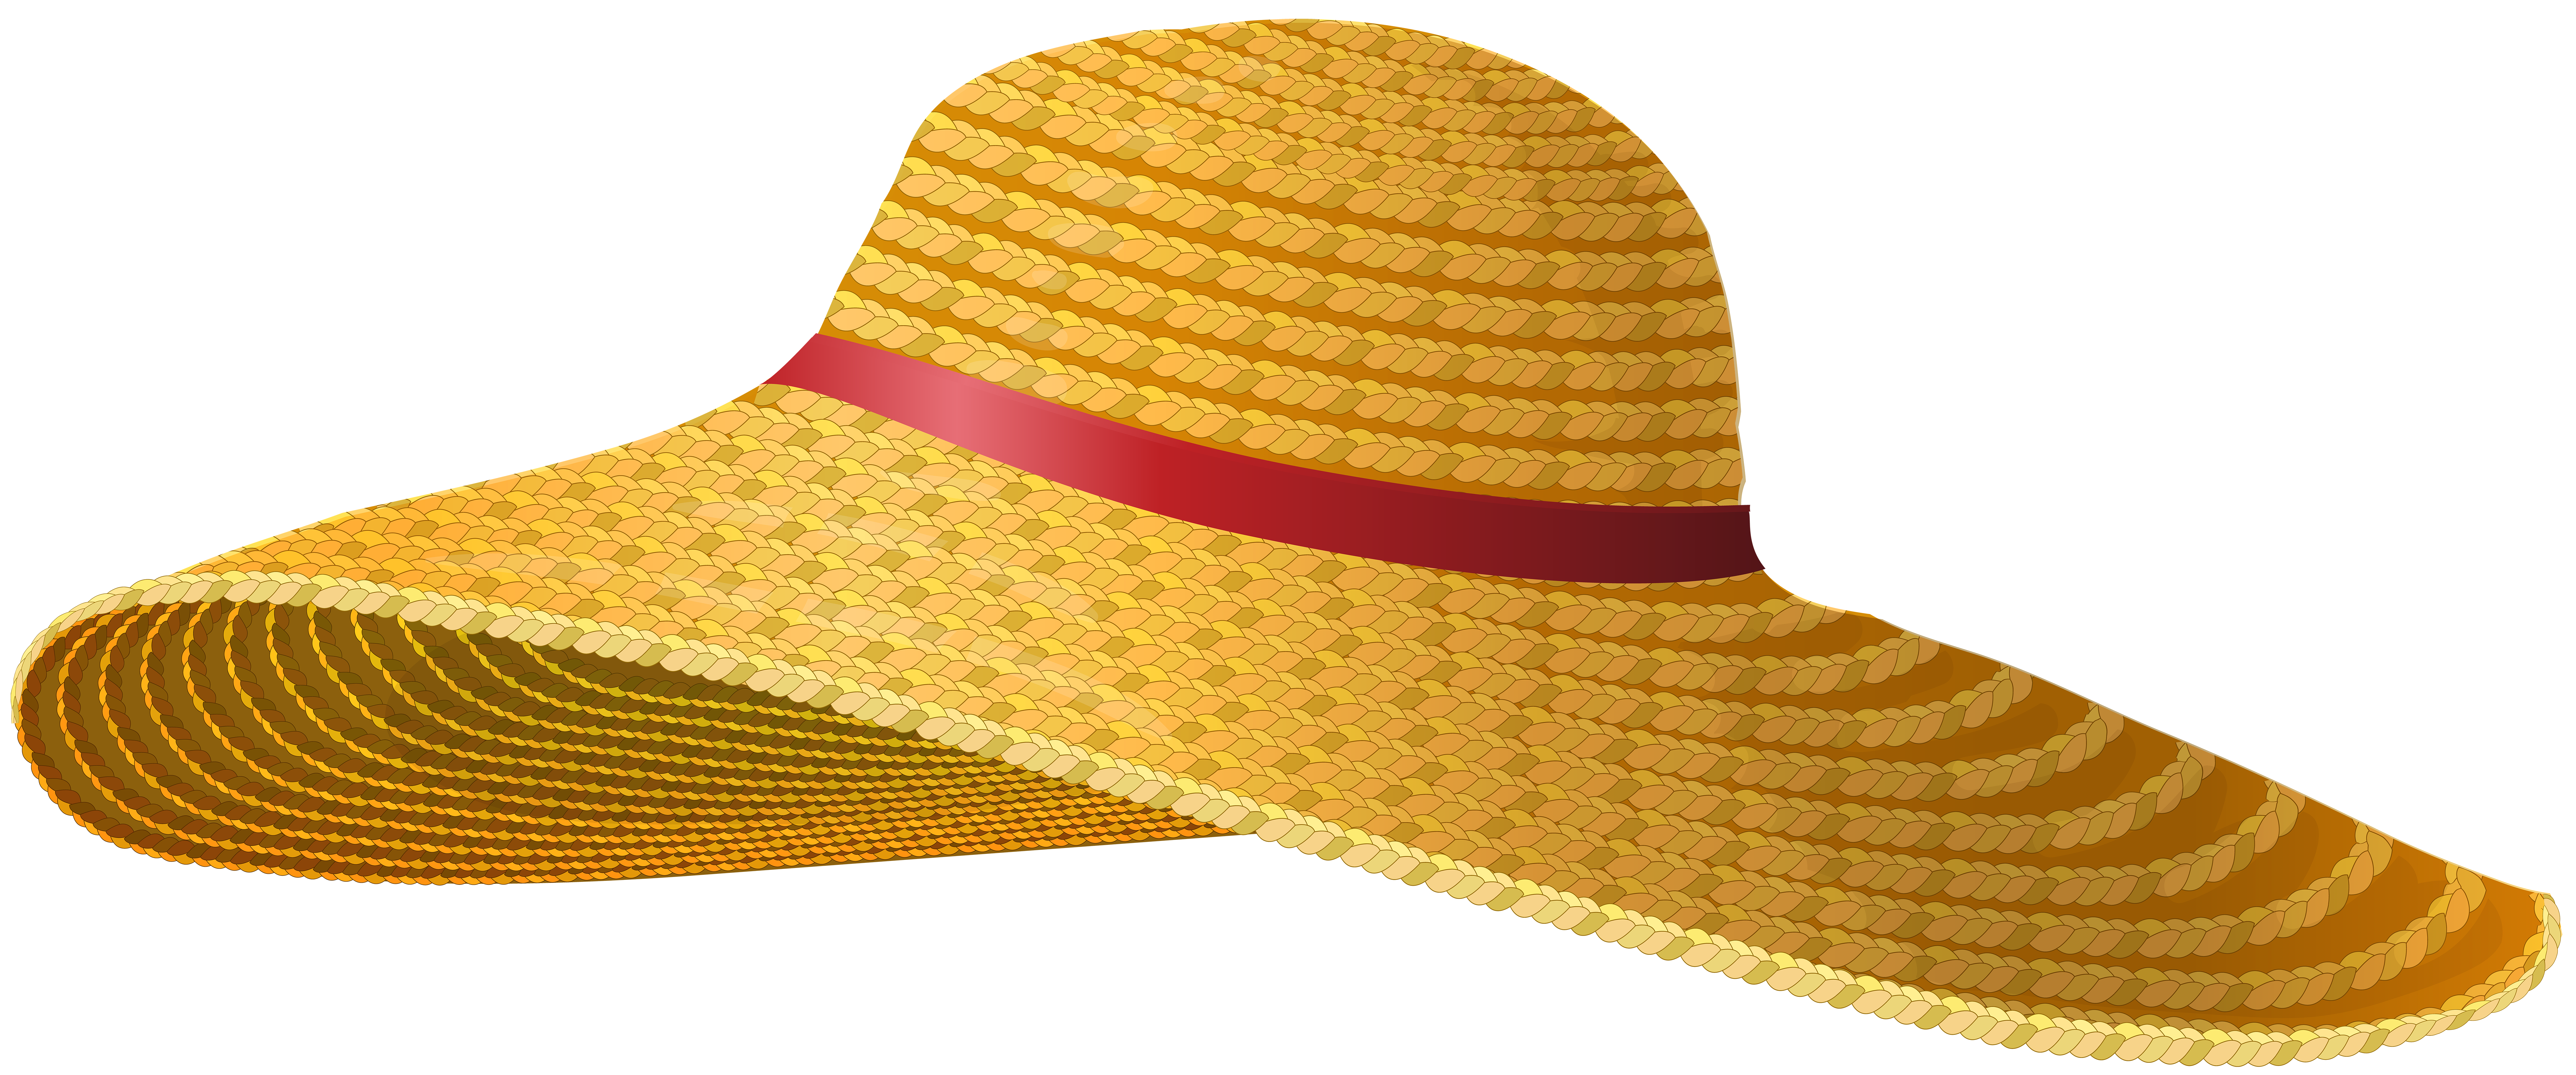 summer hat png